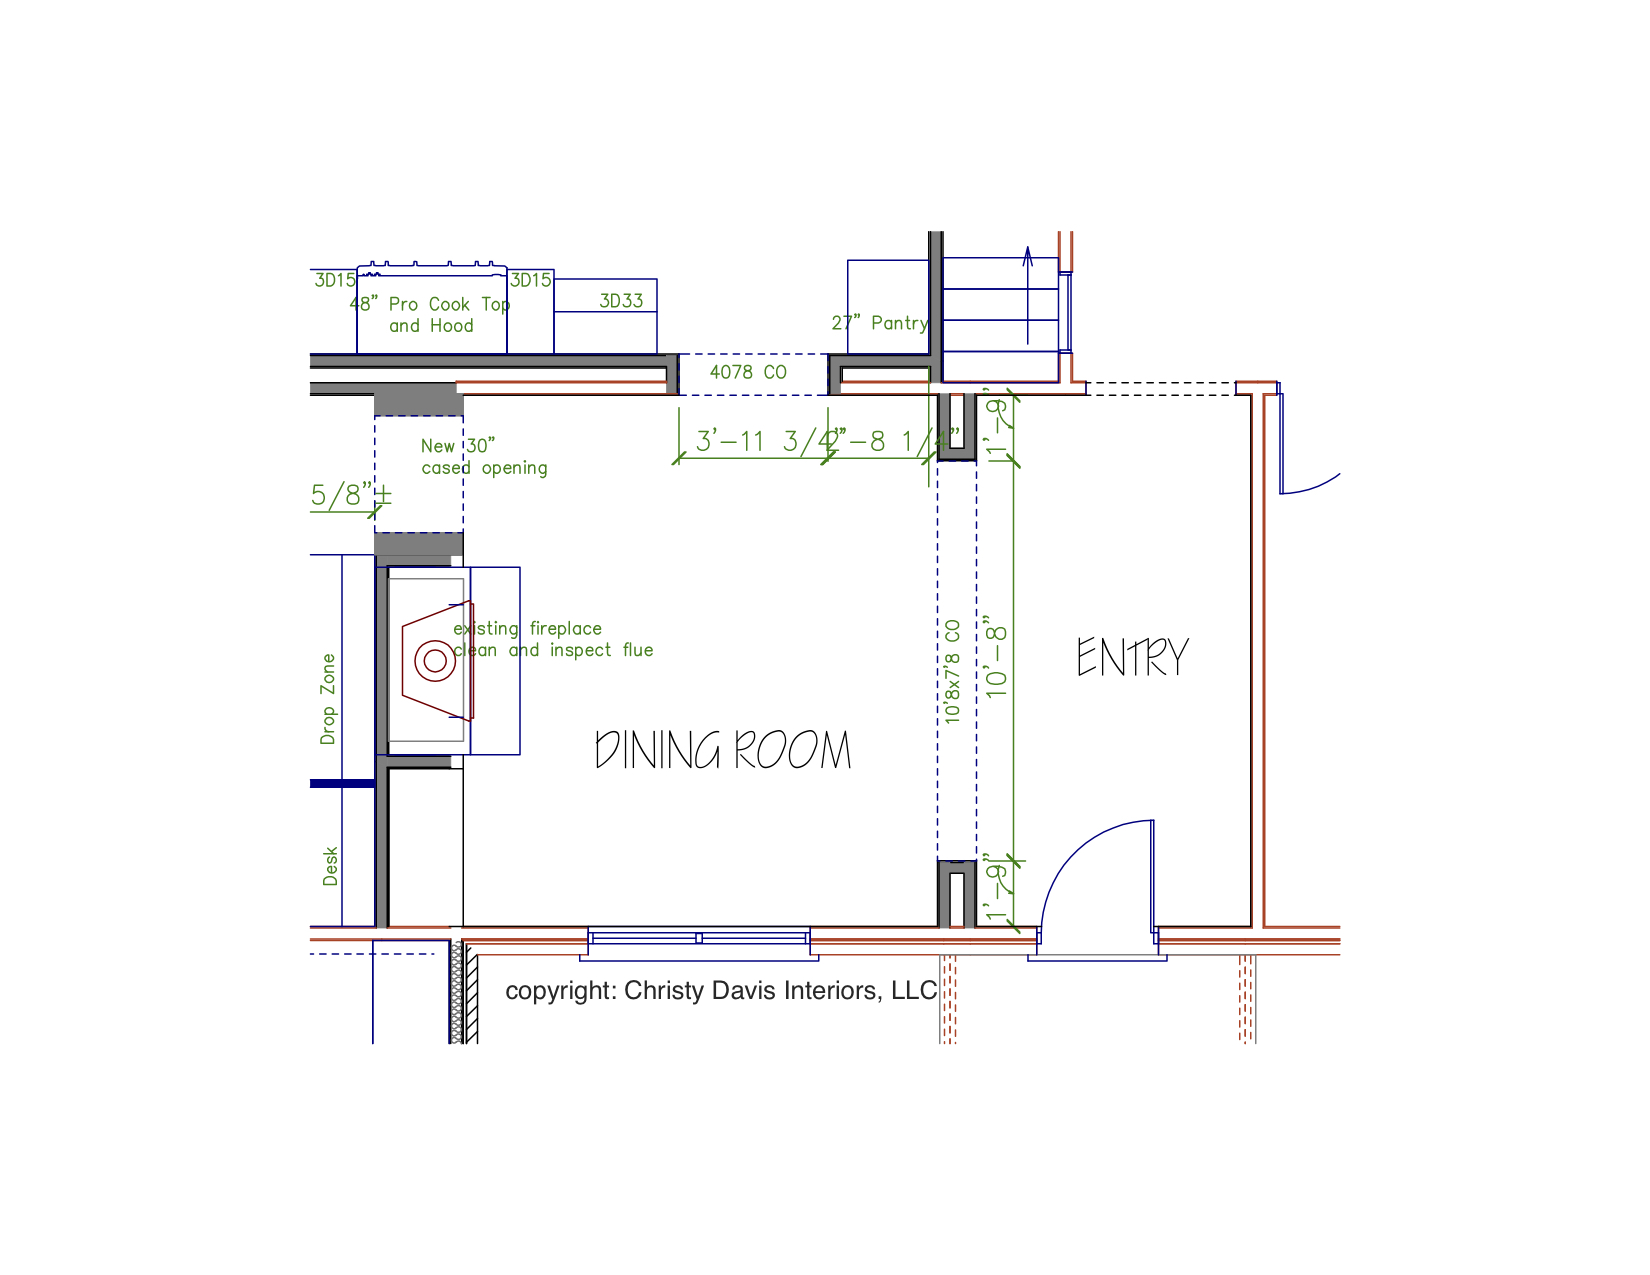 Christy Davis Interiors: Home Renovation entry and dining room